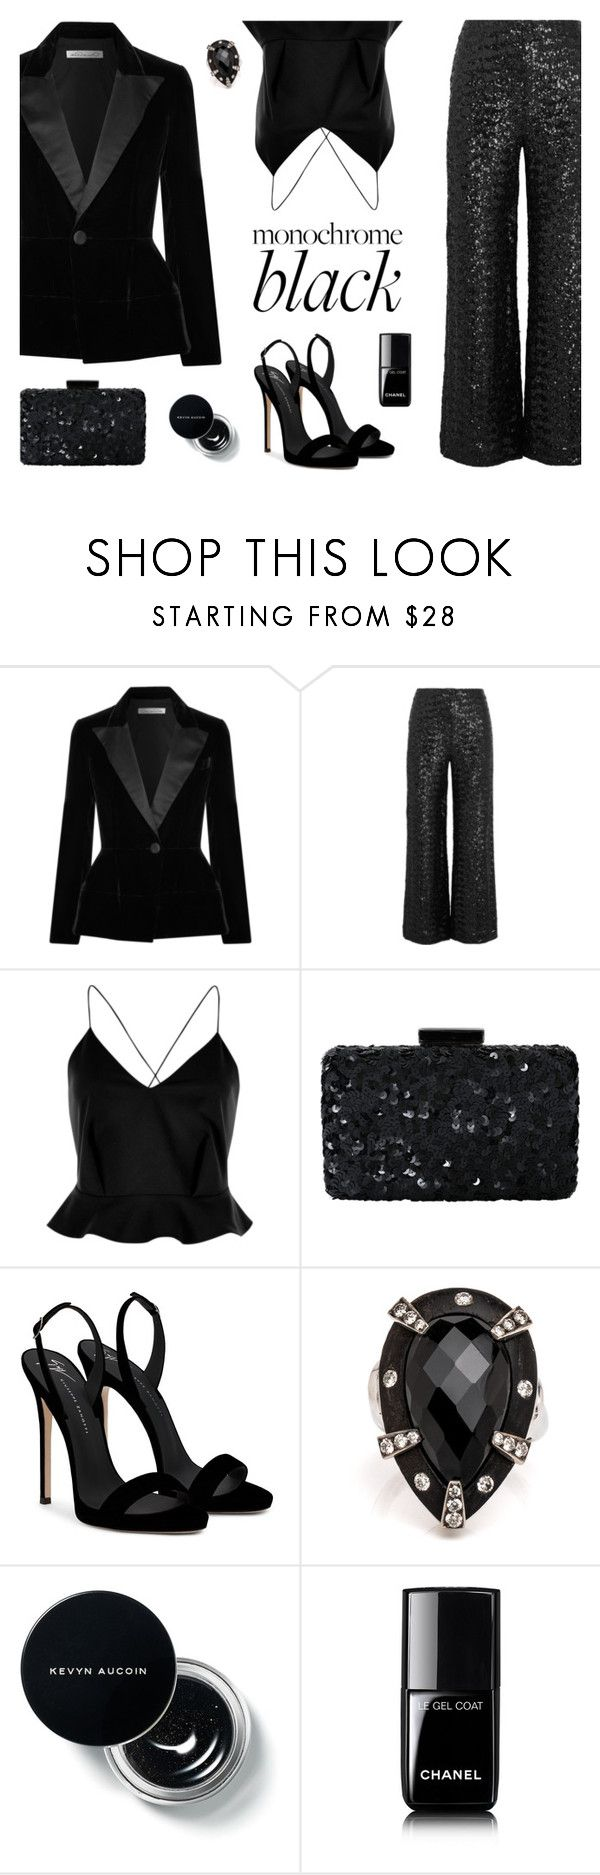 """Black Magic"" by stavrolga on Polyvore featuring Oscar de la Renta, Roland Mouret, River Island, Giuseppe Zanotti, Chanel, velvet and allblackoutfit"